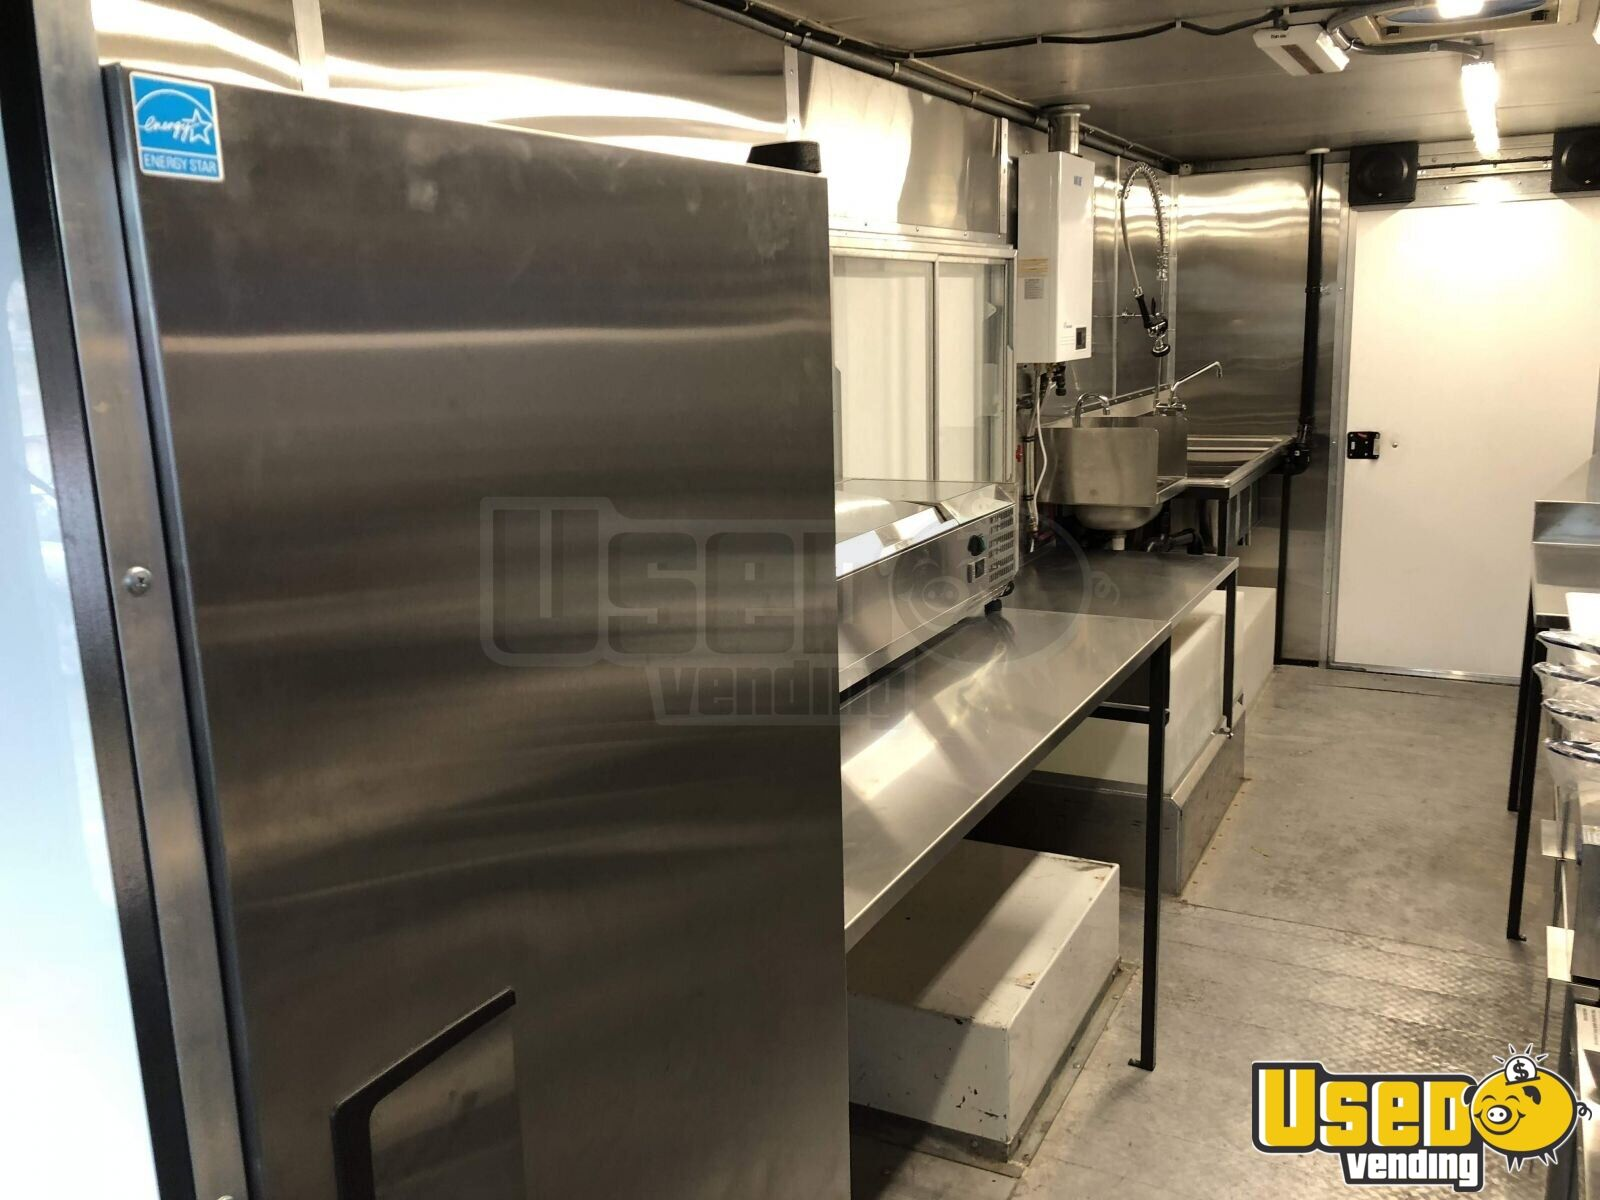 1996 27' Step Van Kitchen Food Truck All-purpose Food Truck Stainless Steel Wall Covers Washington for Sale - 4